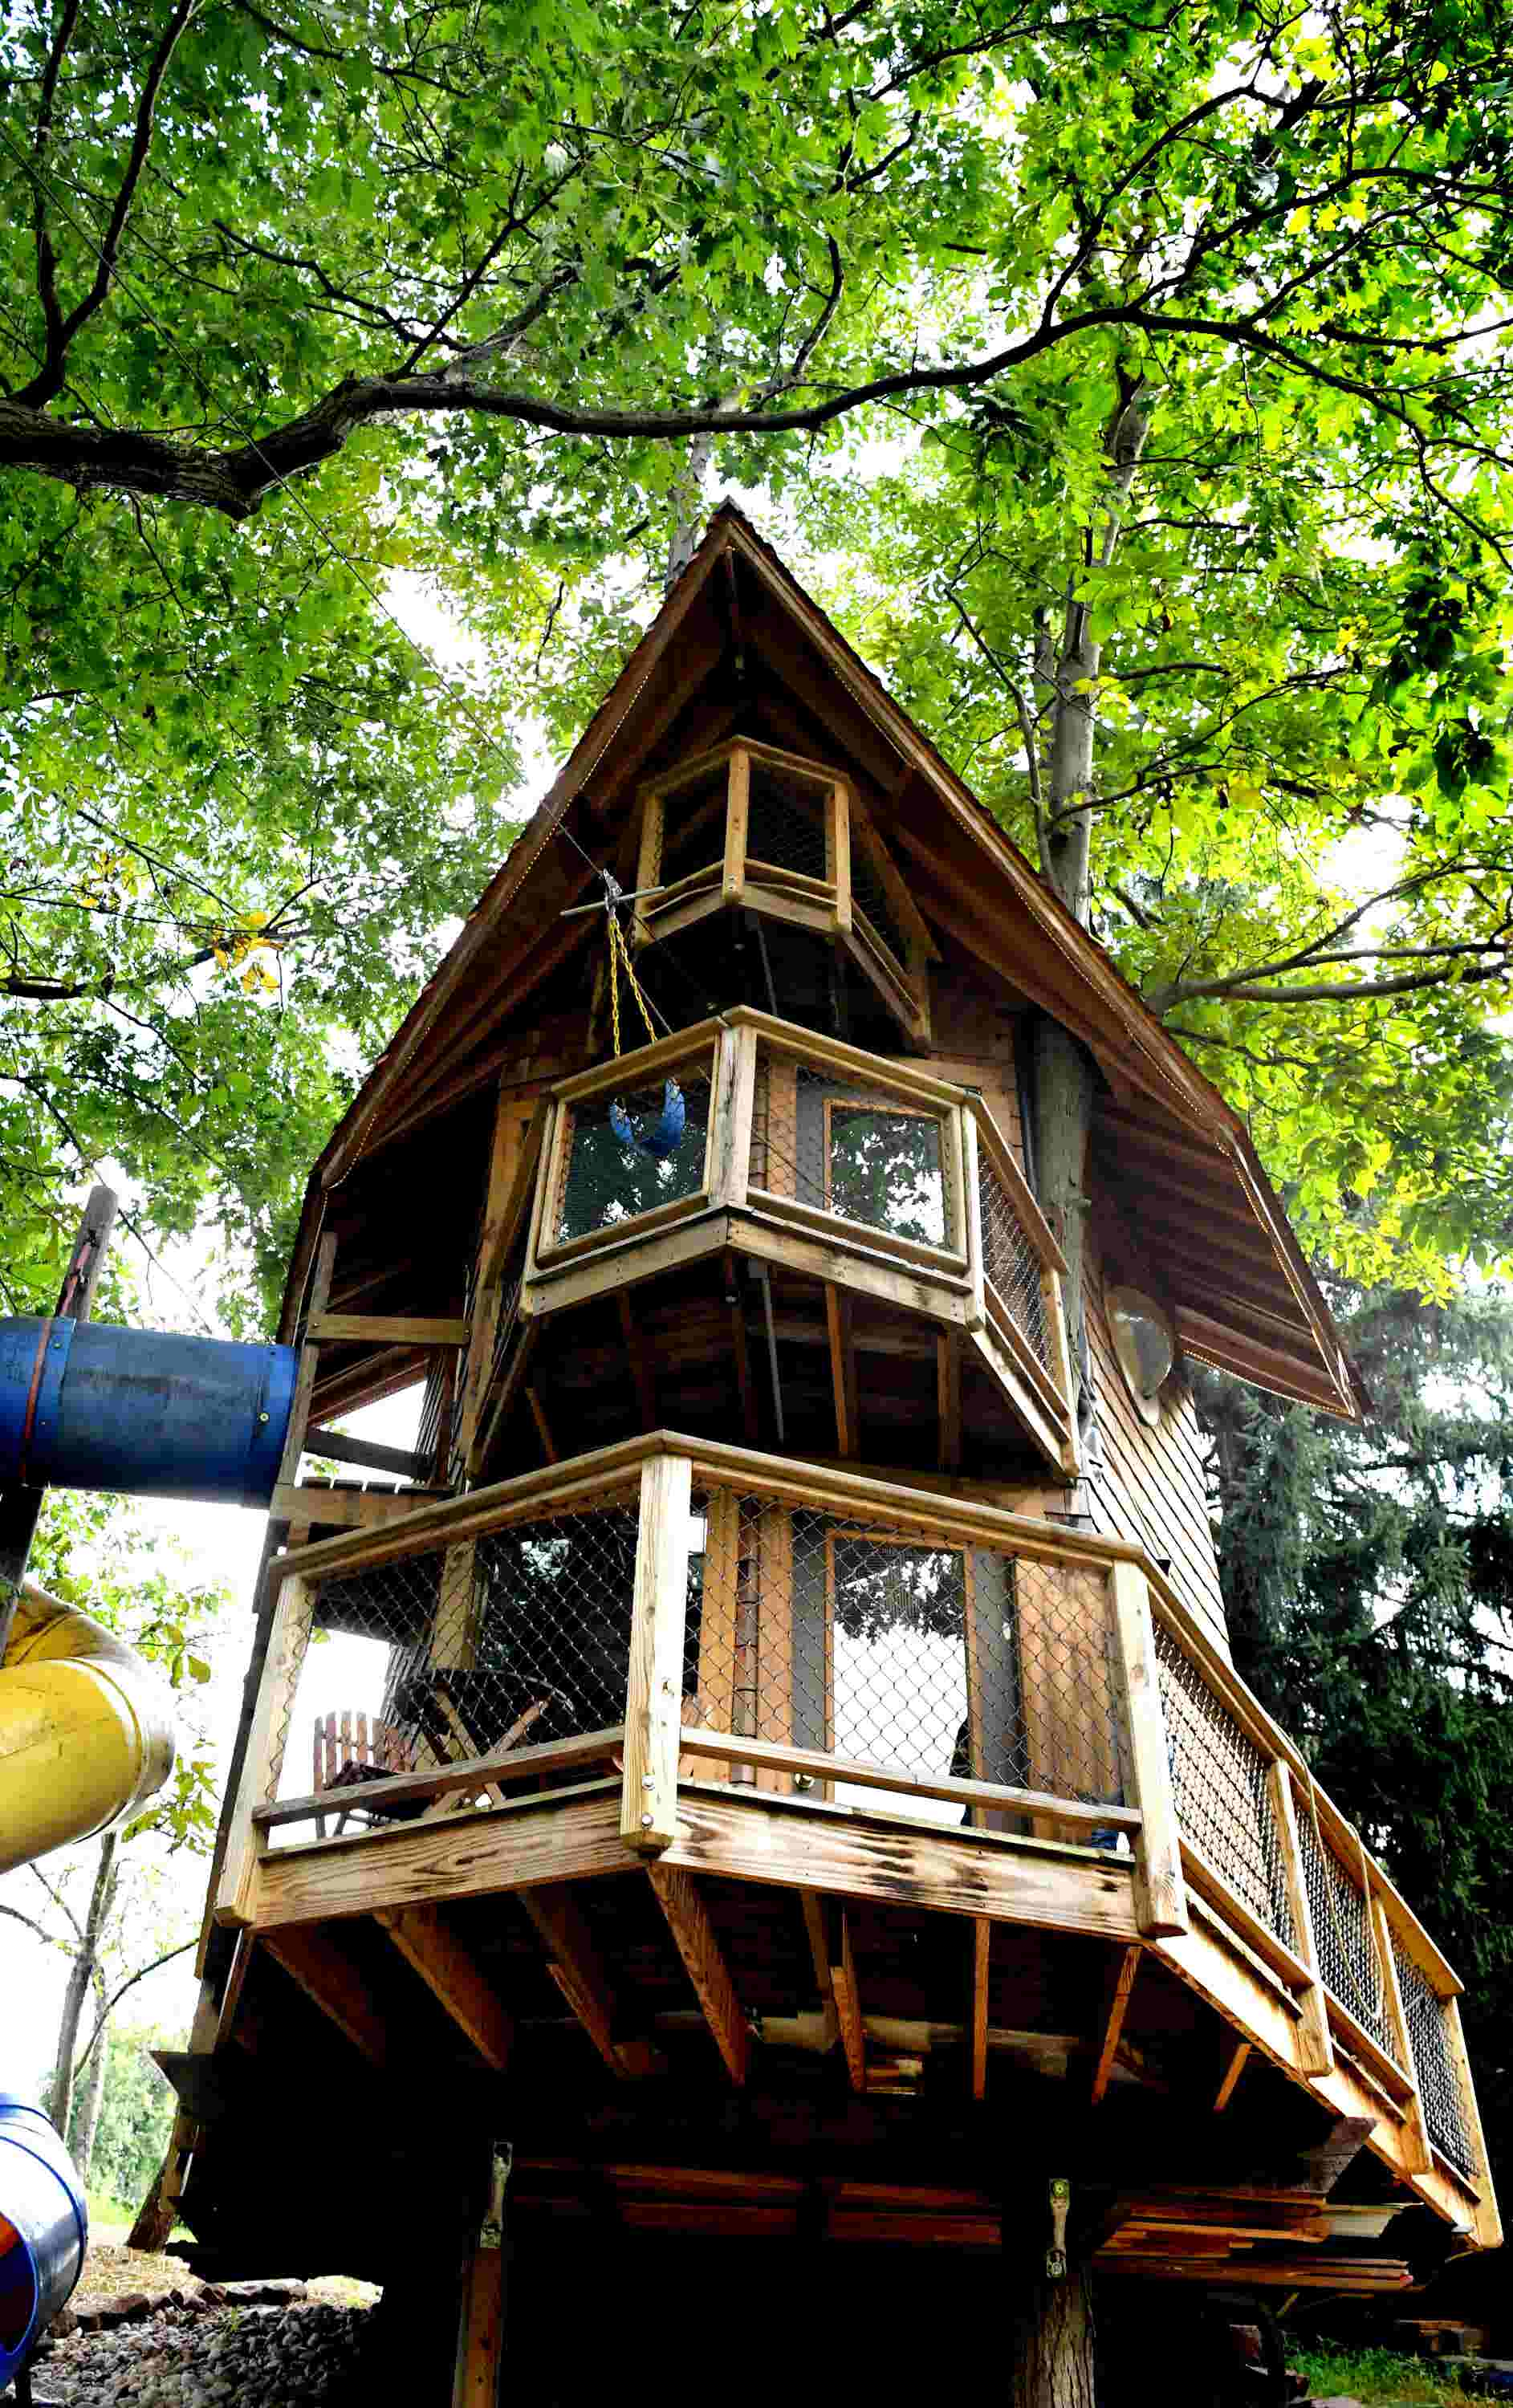 mega treehouse in goldsboro brings out inner child has recycling